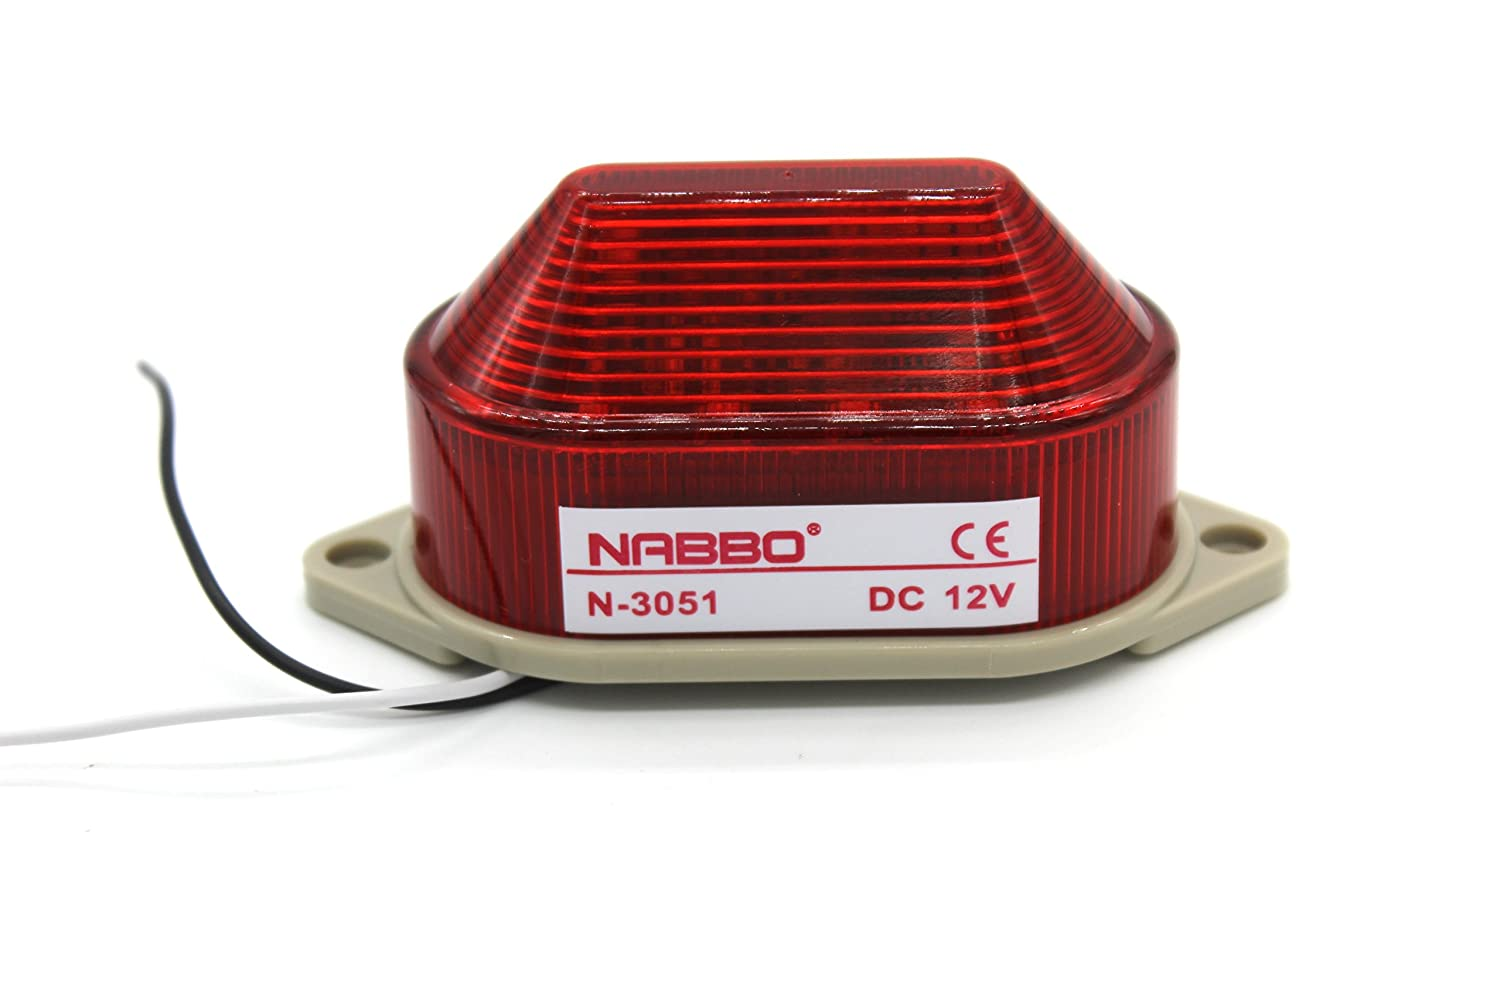 Industrial DC 12V Red LED Warning Light Bulb Signal Tower Lamp N-3051 Steady Flash